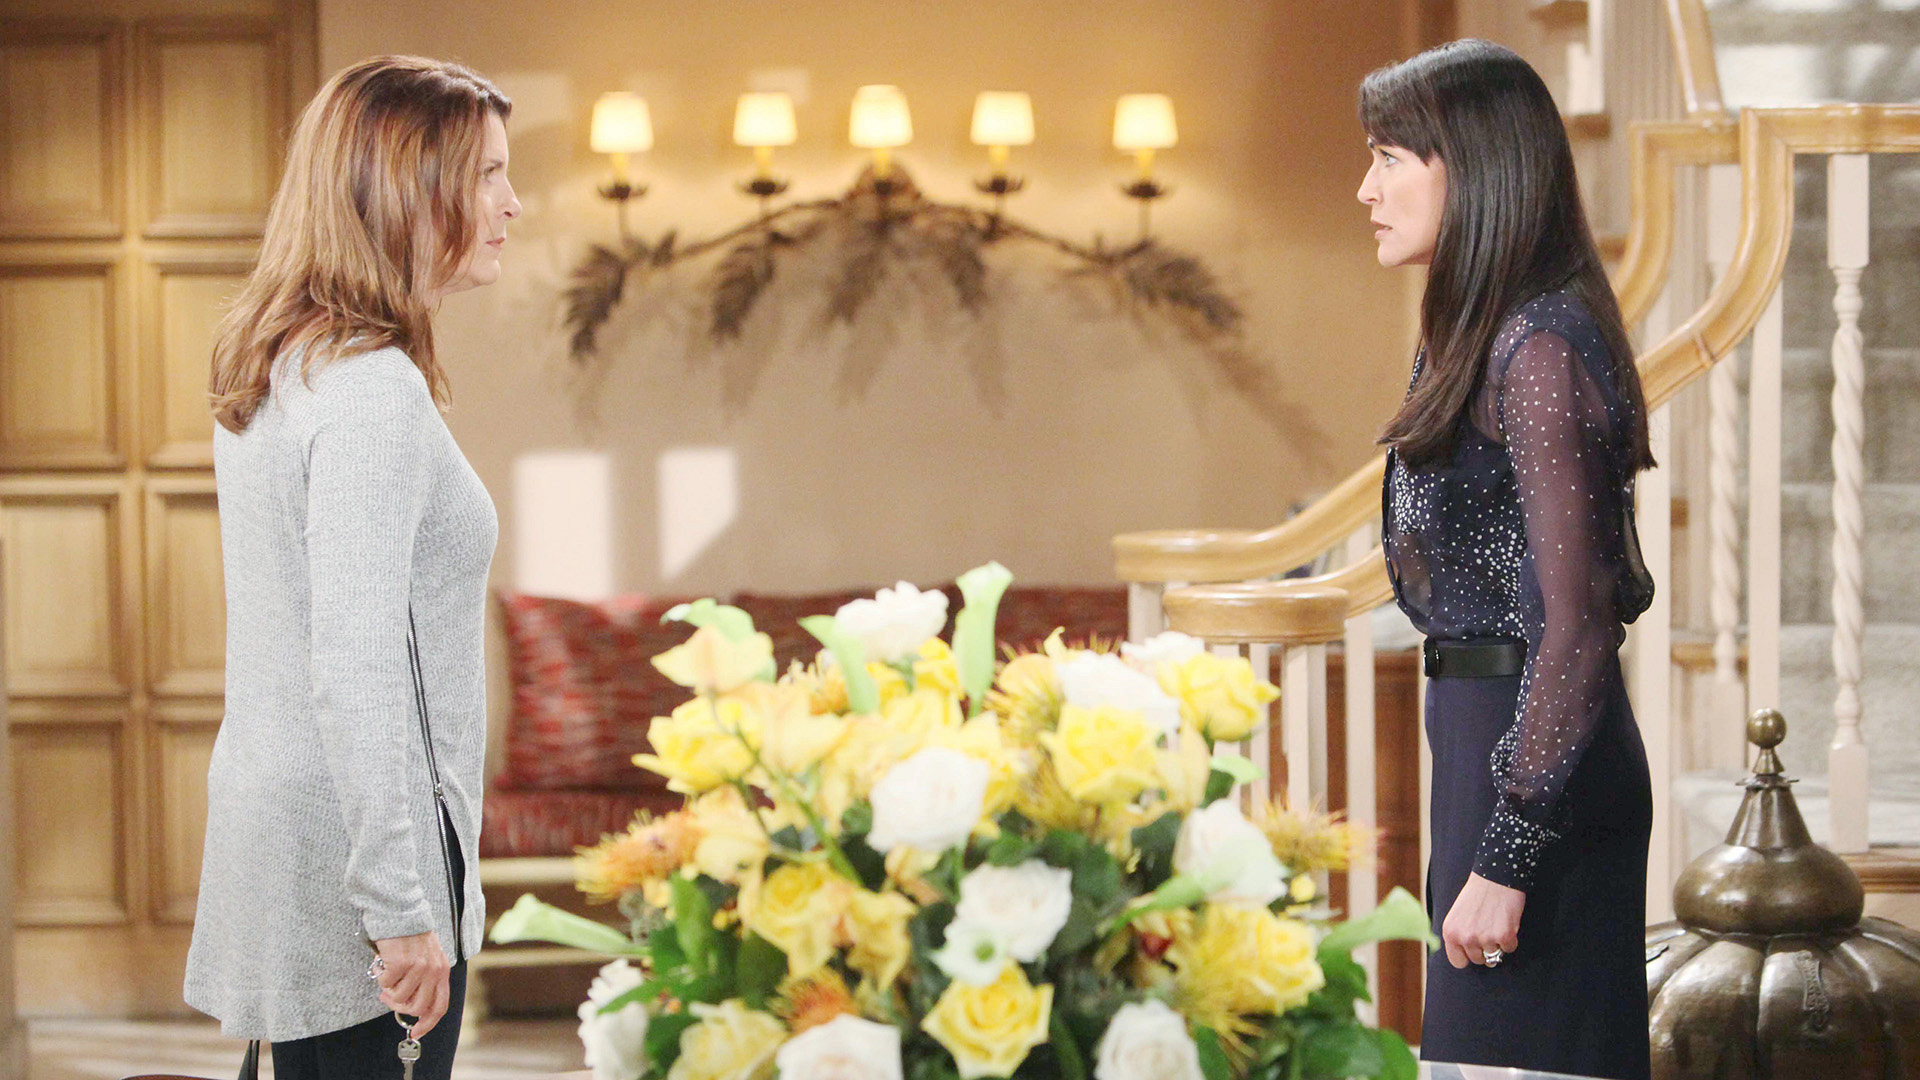 Sheila's favor for Eric puts her in an intense confrontational exchange with Quinn.